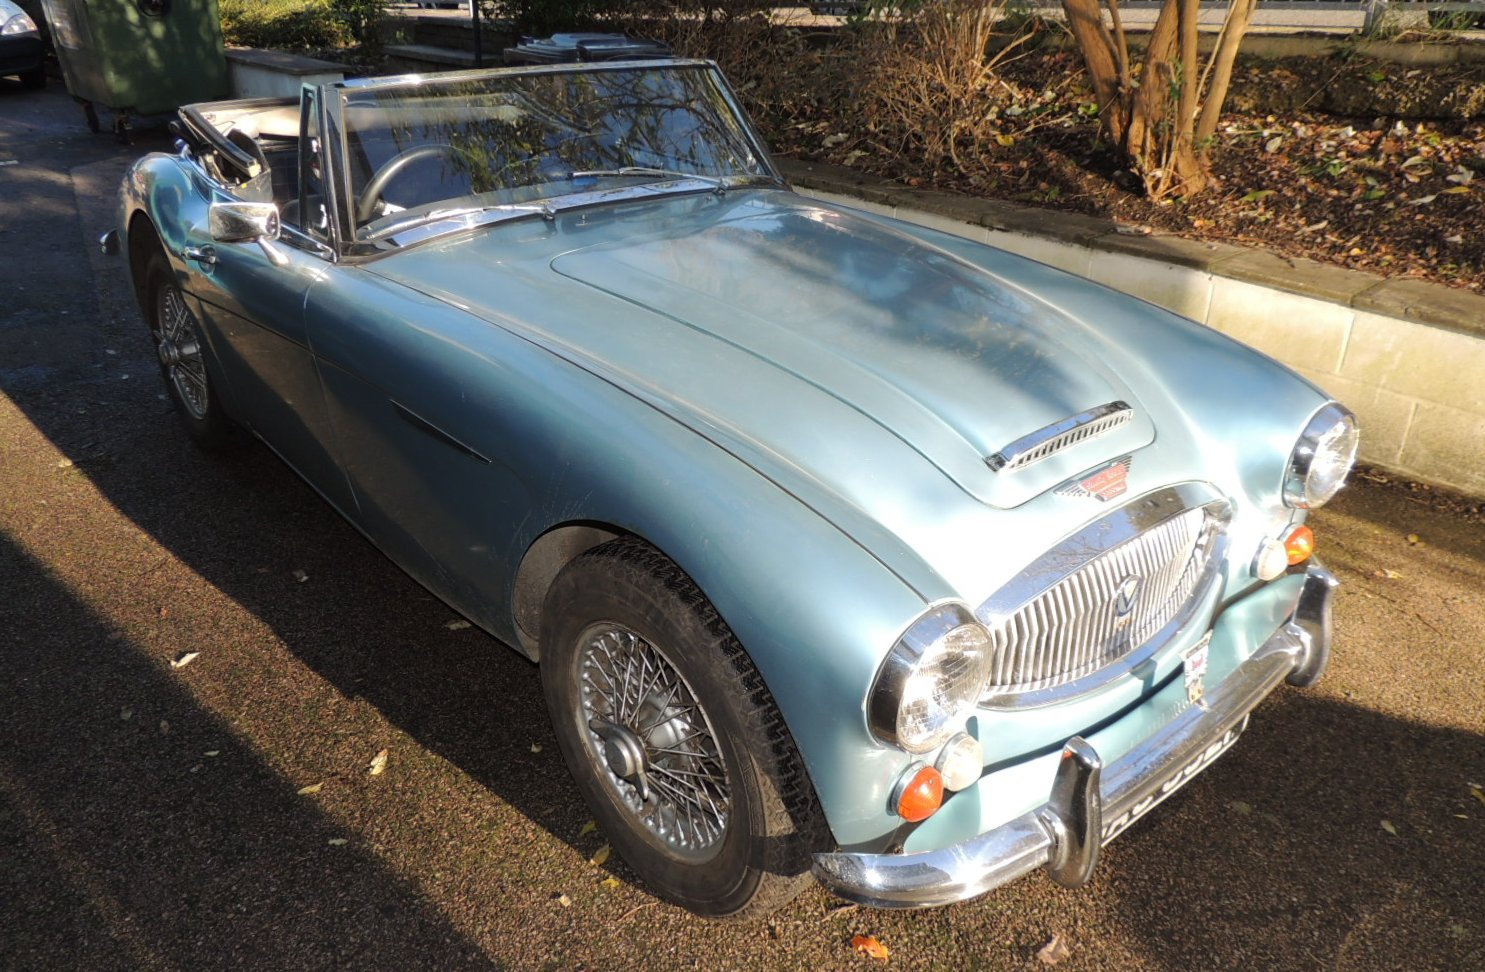 1967 Austin Healey 3000 Mk III in Ice Blue